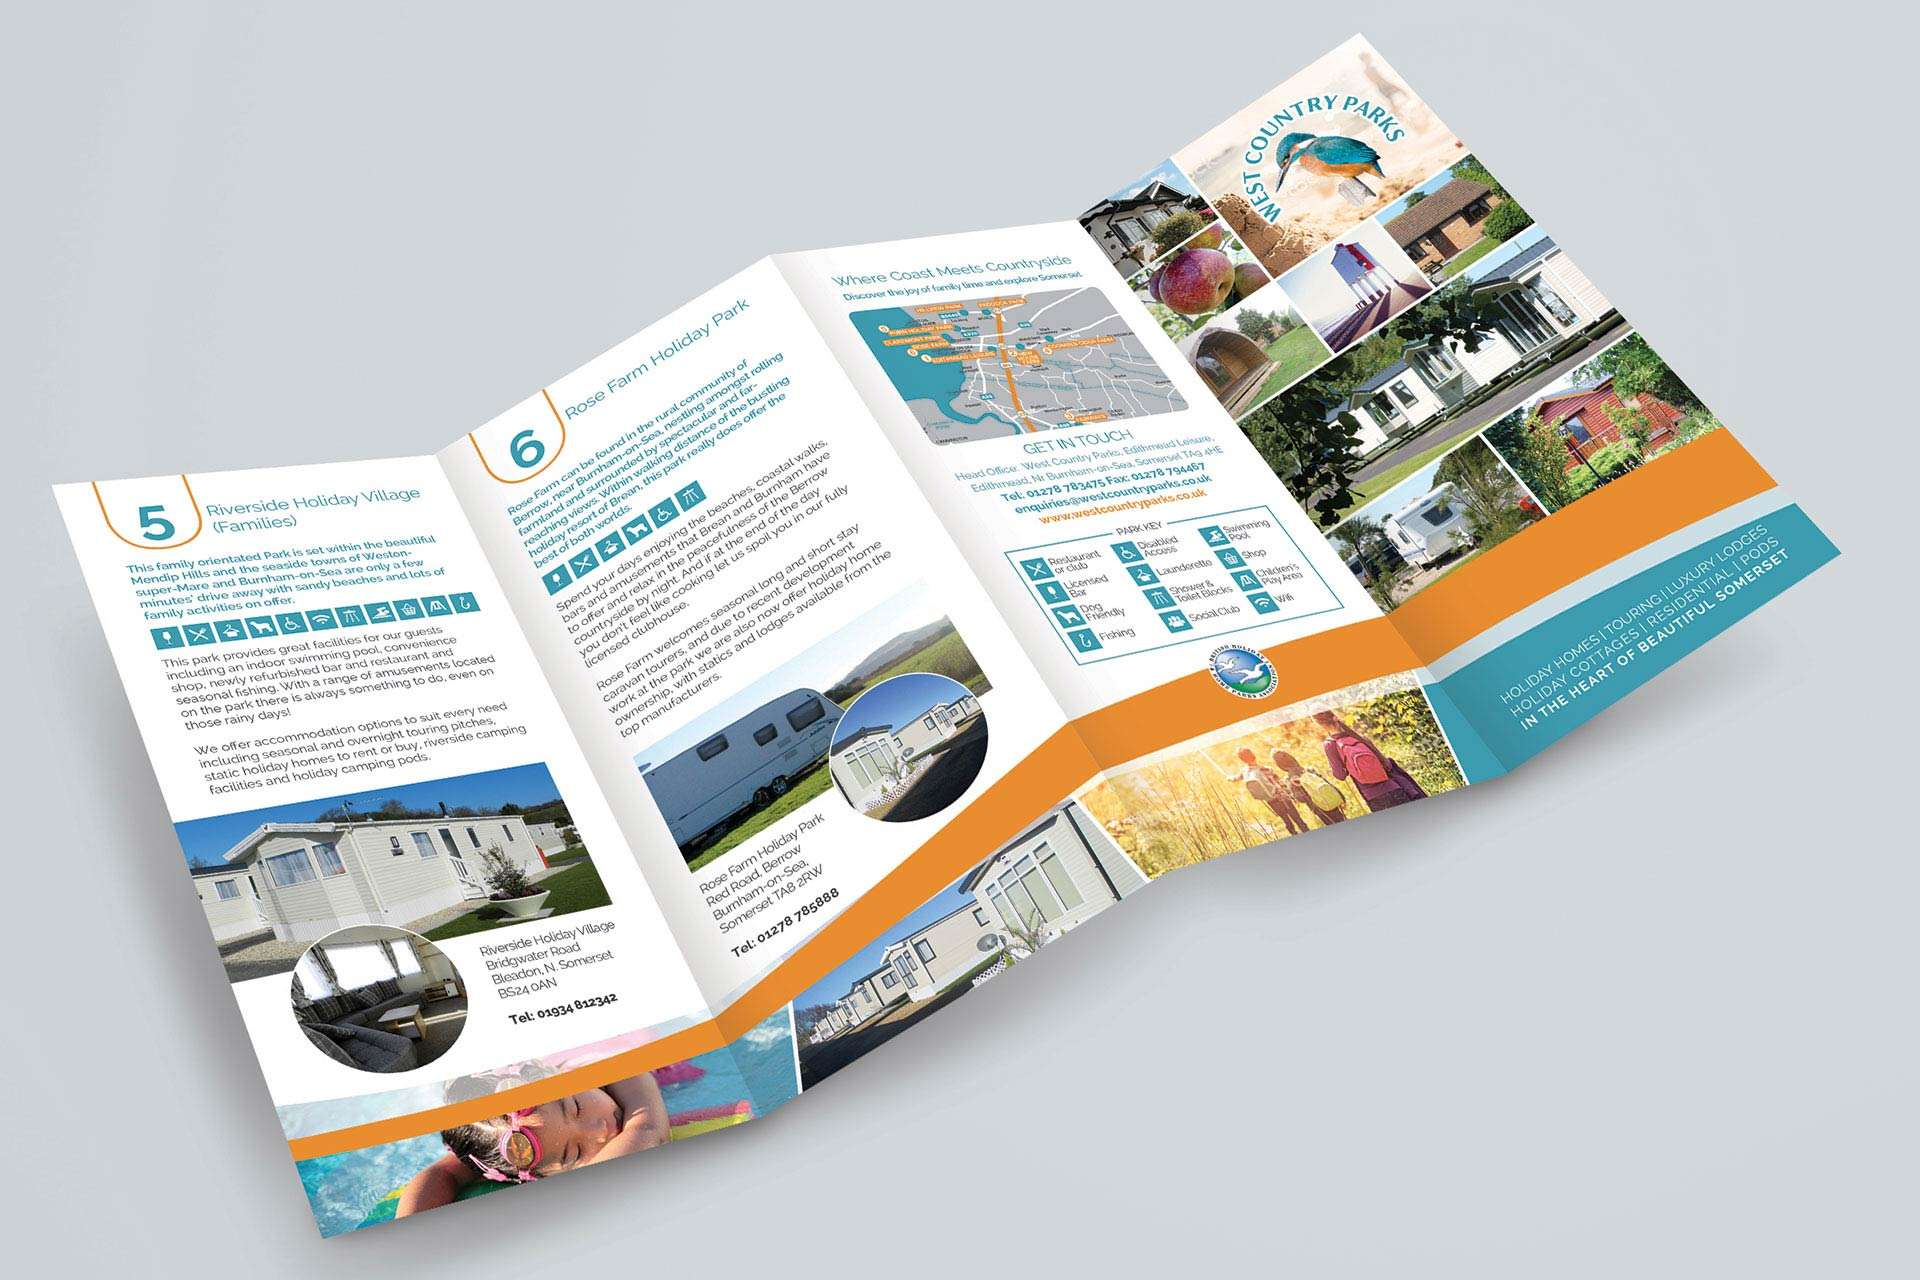 Folded Leaflet Design for Holiday Park in Somerset